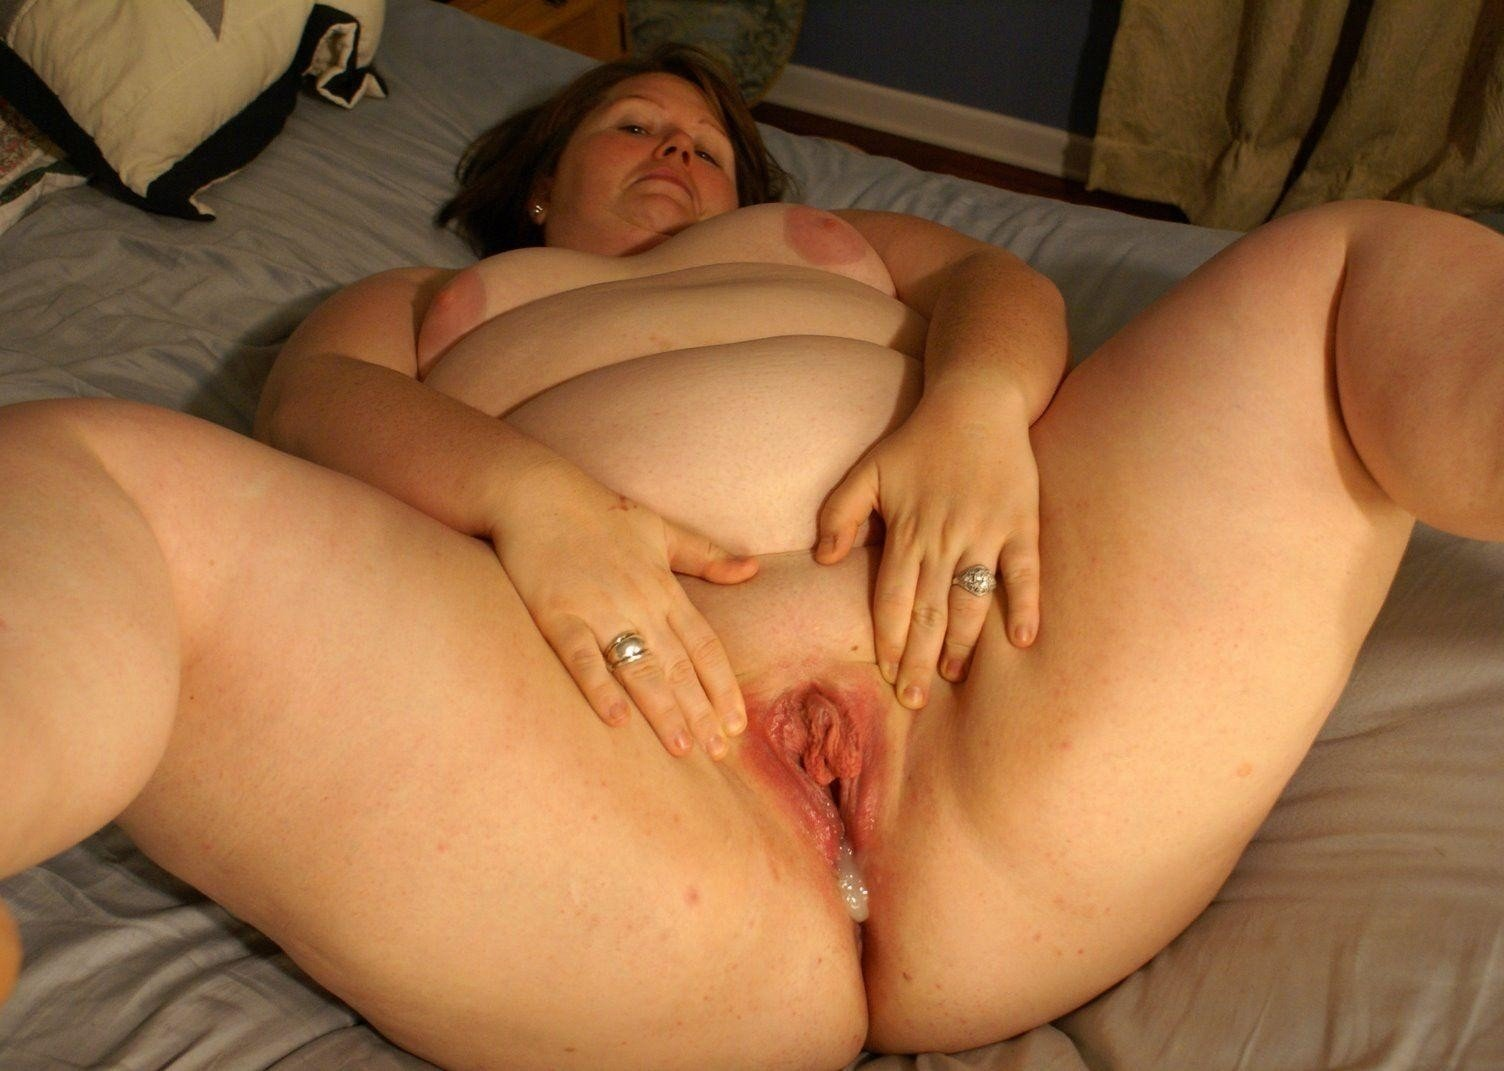 Pregnant fat girl fucking wet pussy live